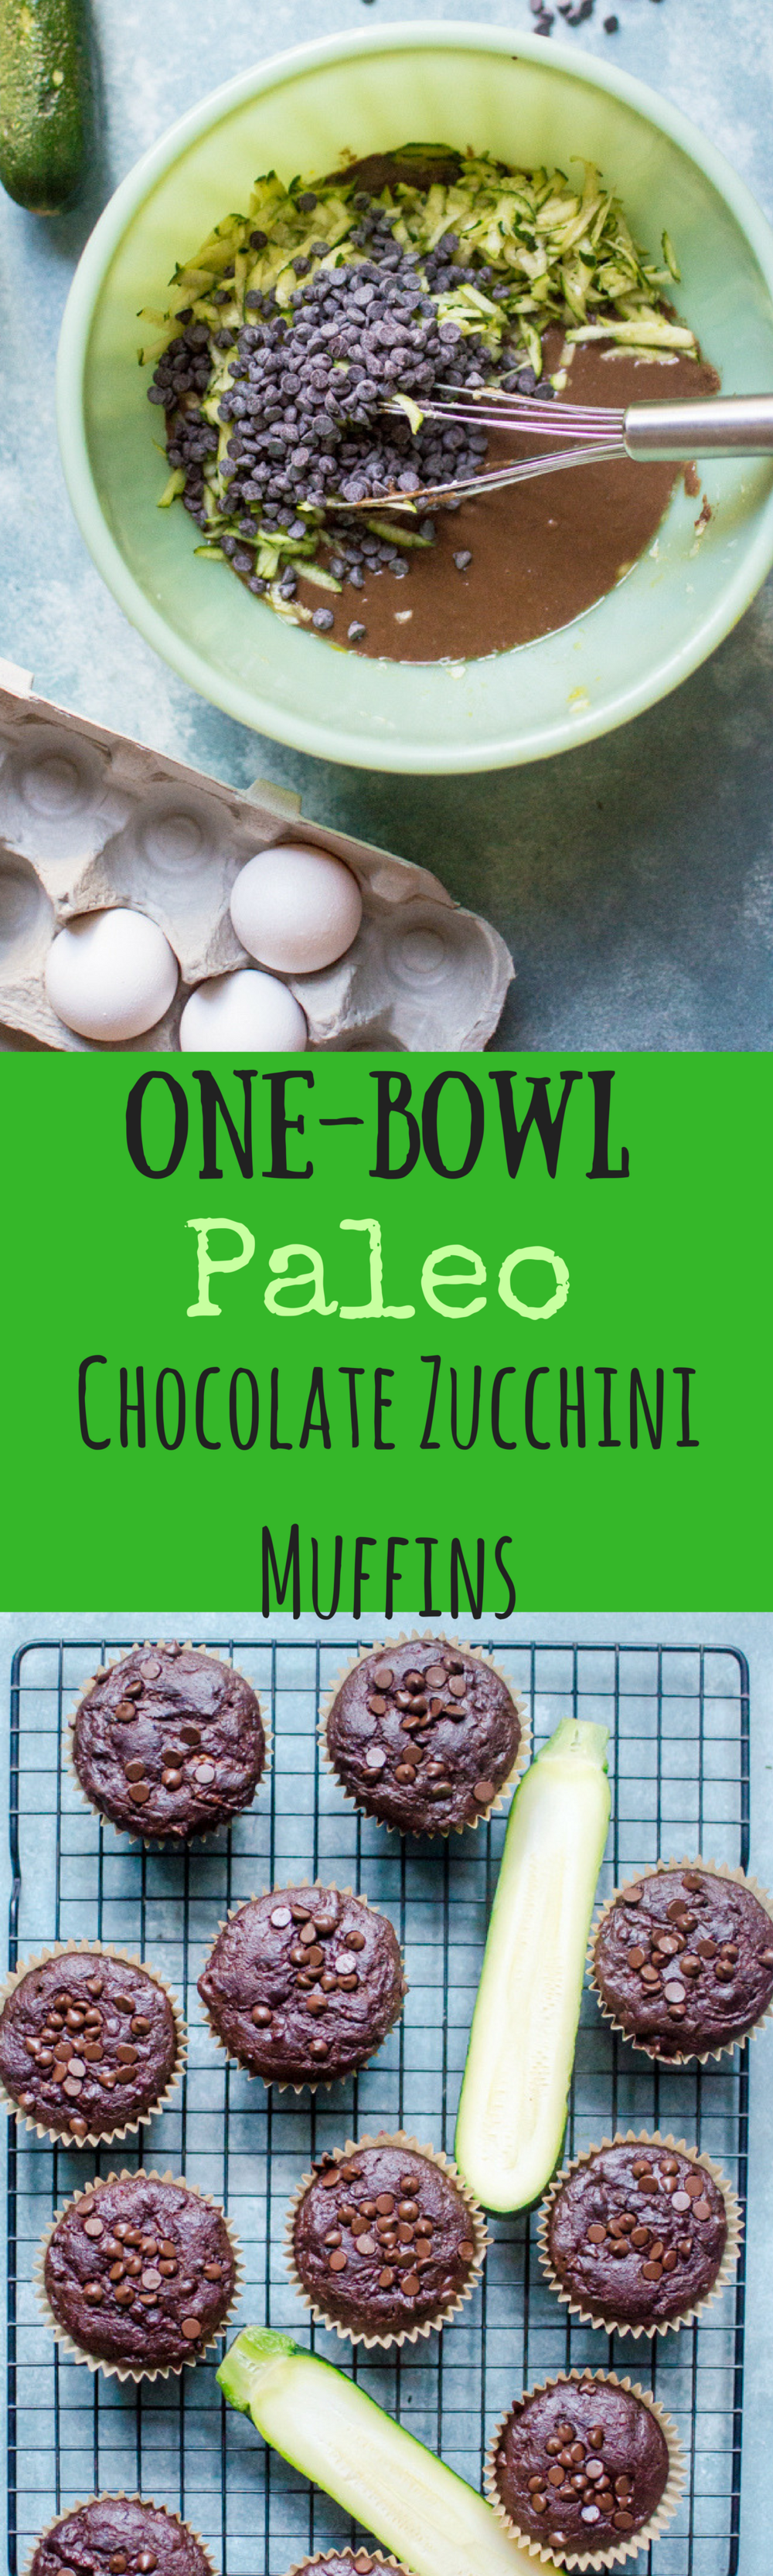 One-Bowl Paleo Chocolate Zucchini Muffins